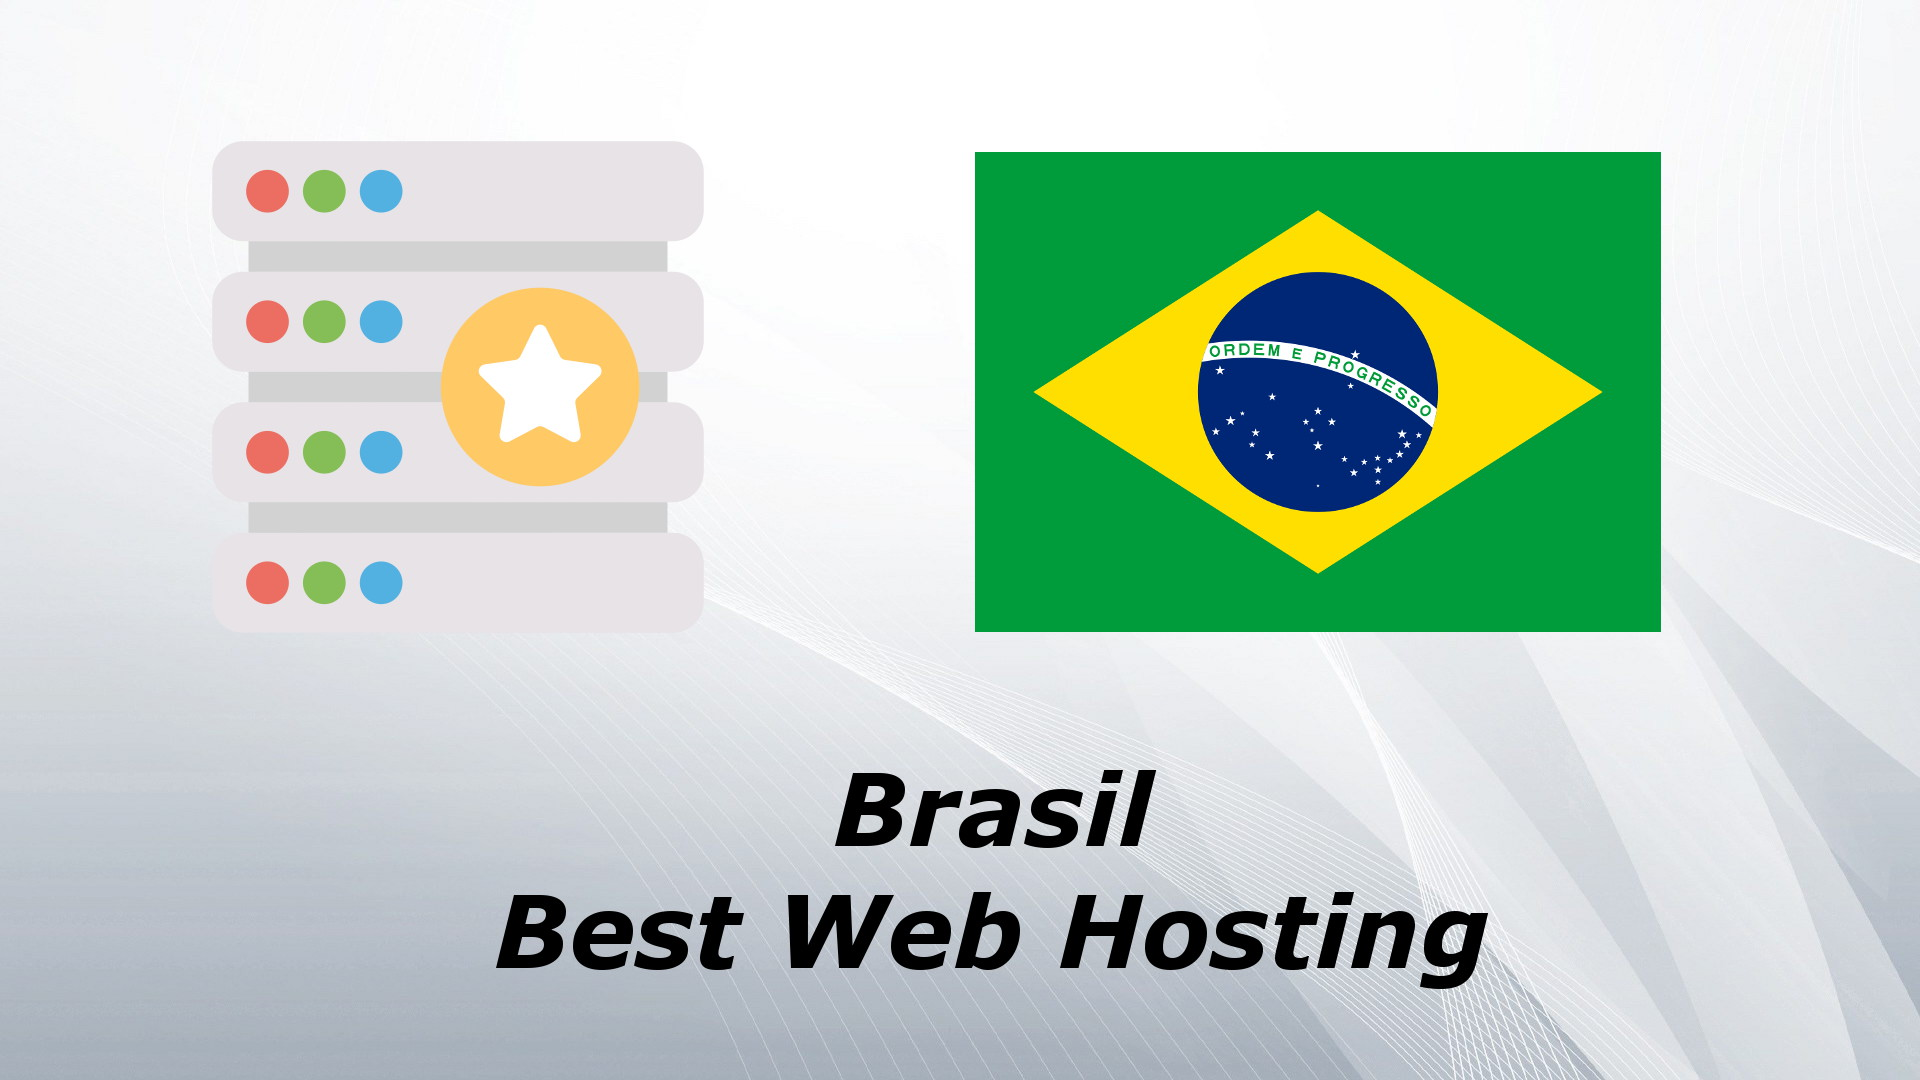 Brazil Best Web Hosting